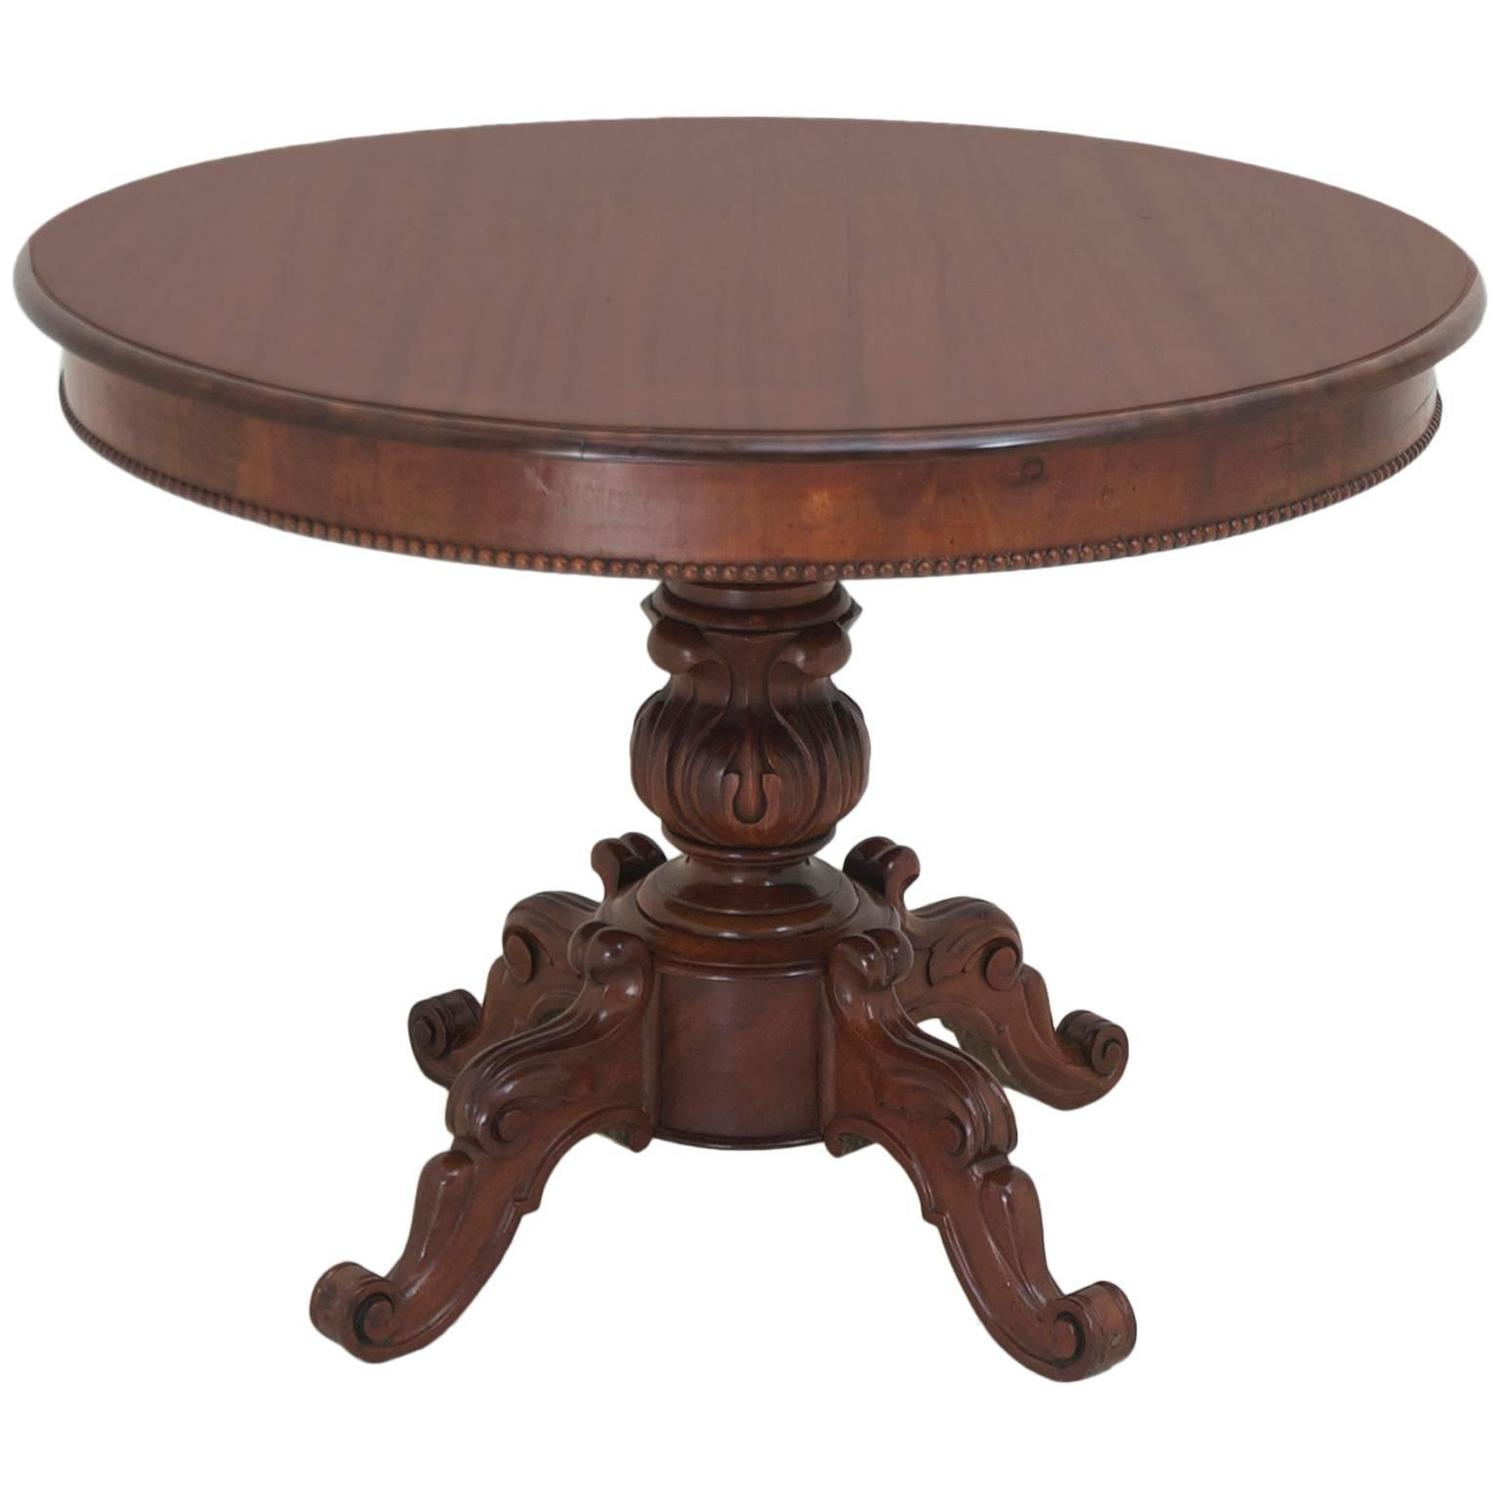 Antique french louis philippe round center pedestal table for Circle table